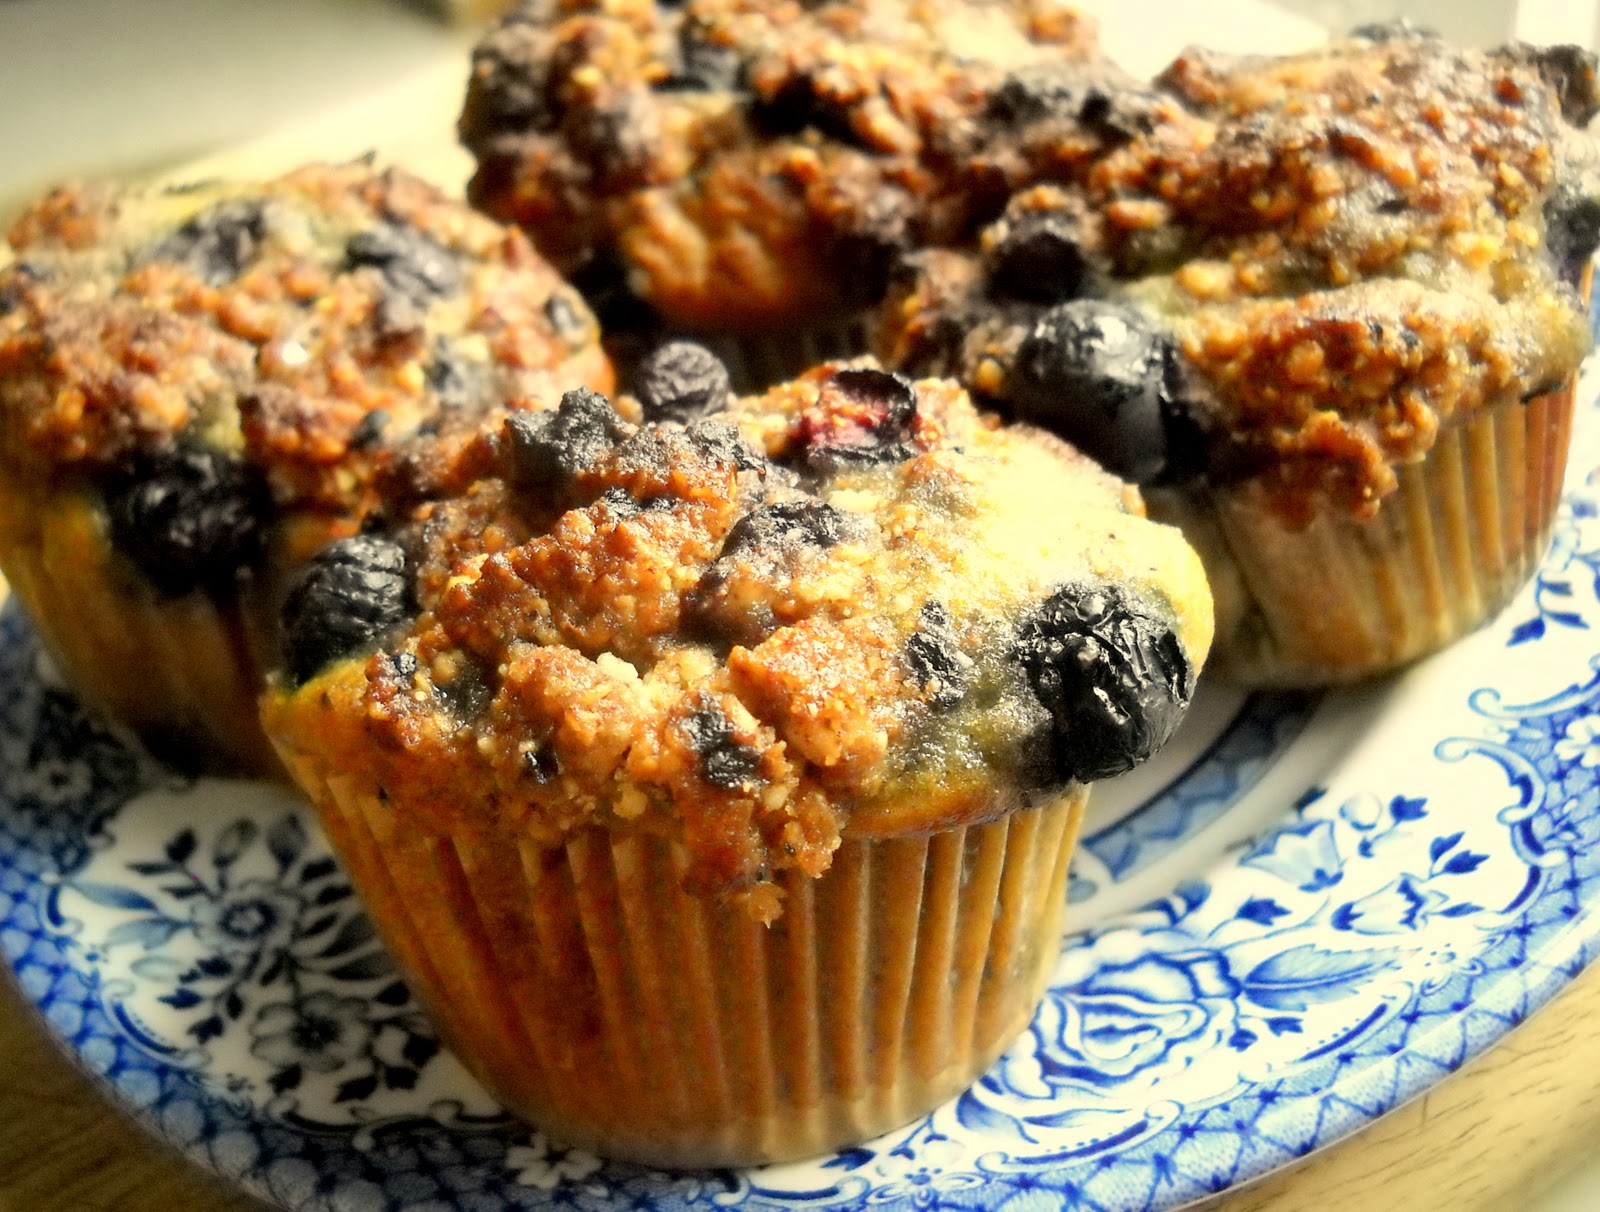 Rest co.: Blueberry Crumble Top Muffins (grain free, gluten free and ...